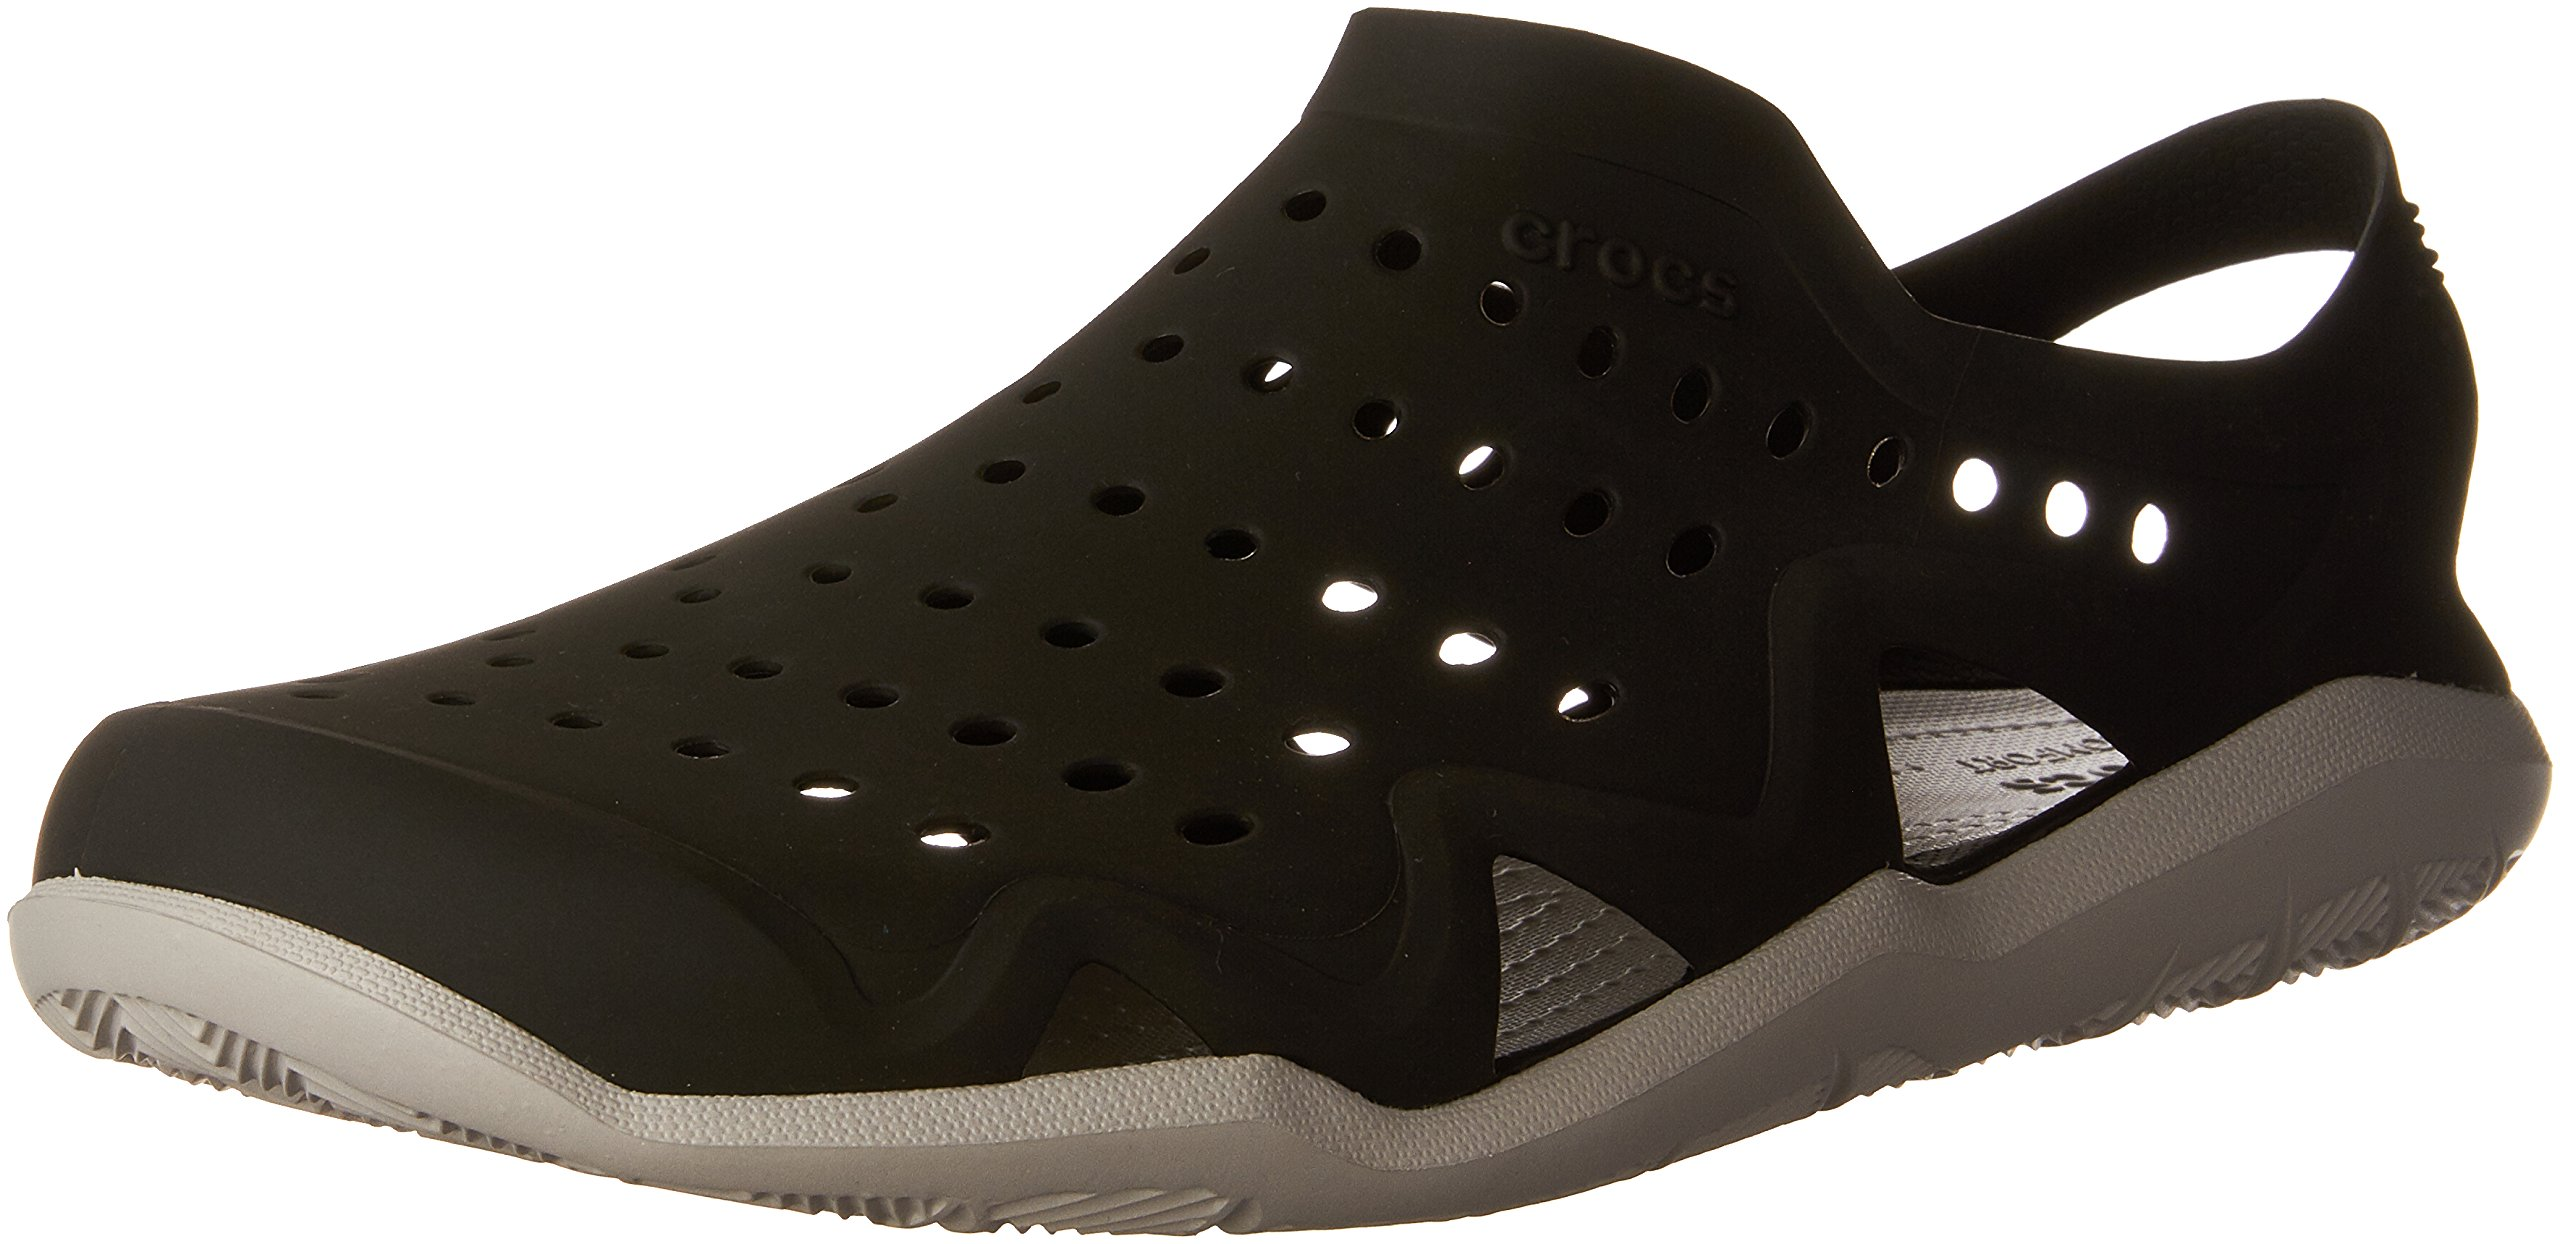 crocs Men's Swiftwater Wave M Flat,Black/Pearl White,13 M US by Crocs